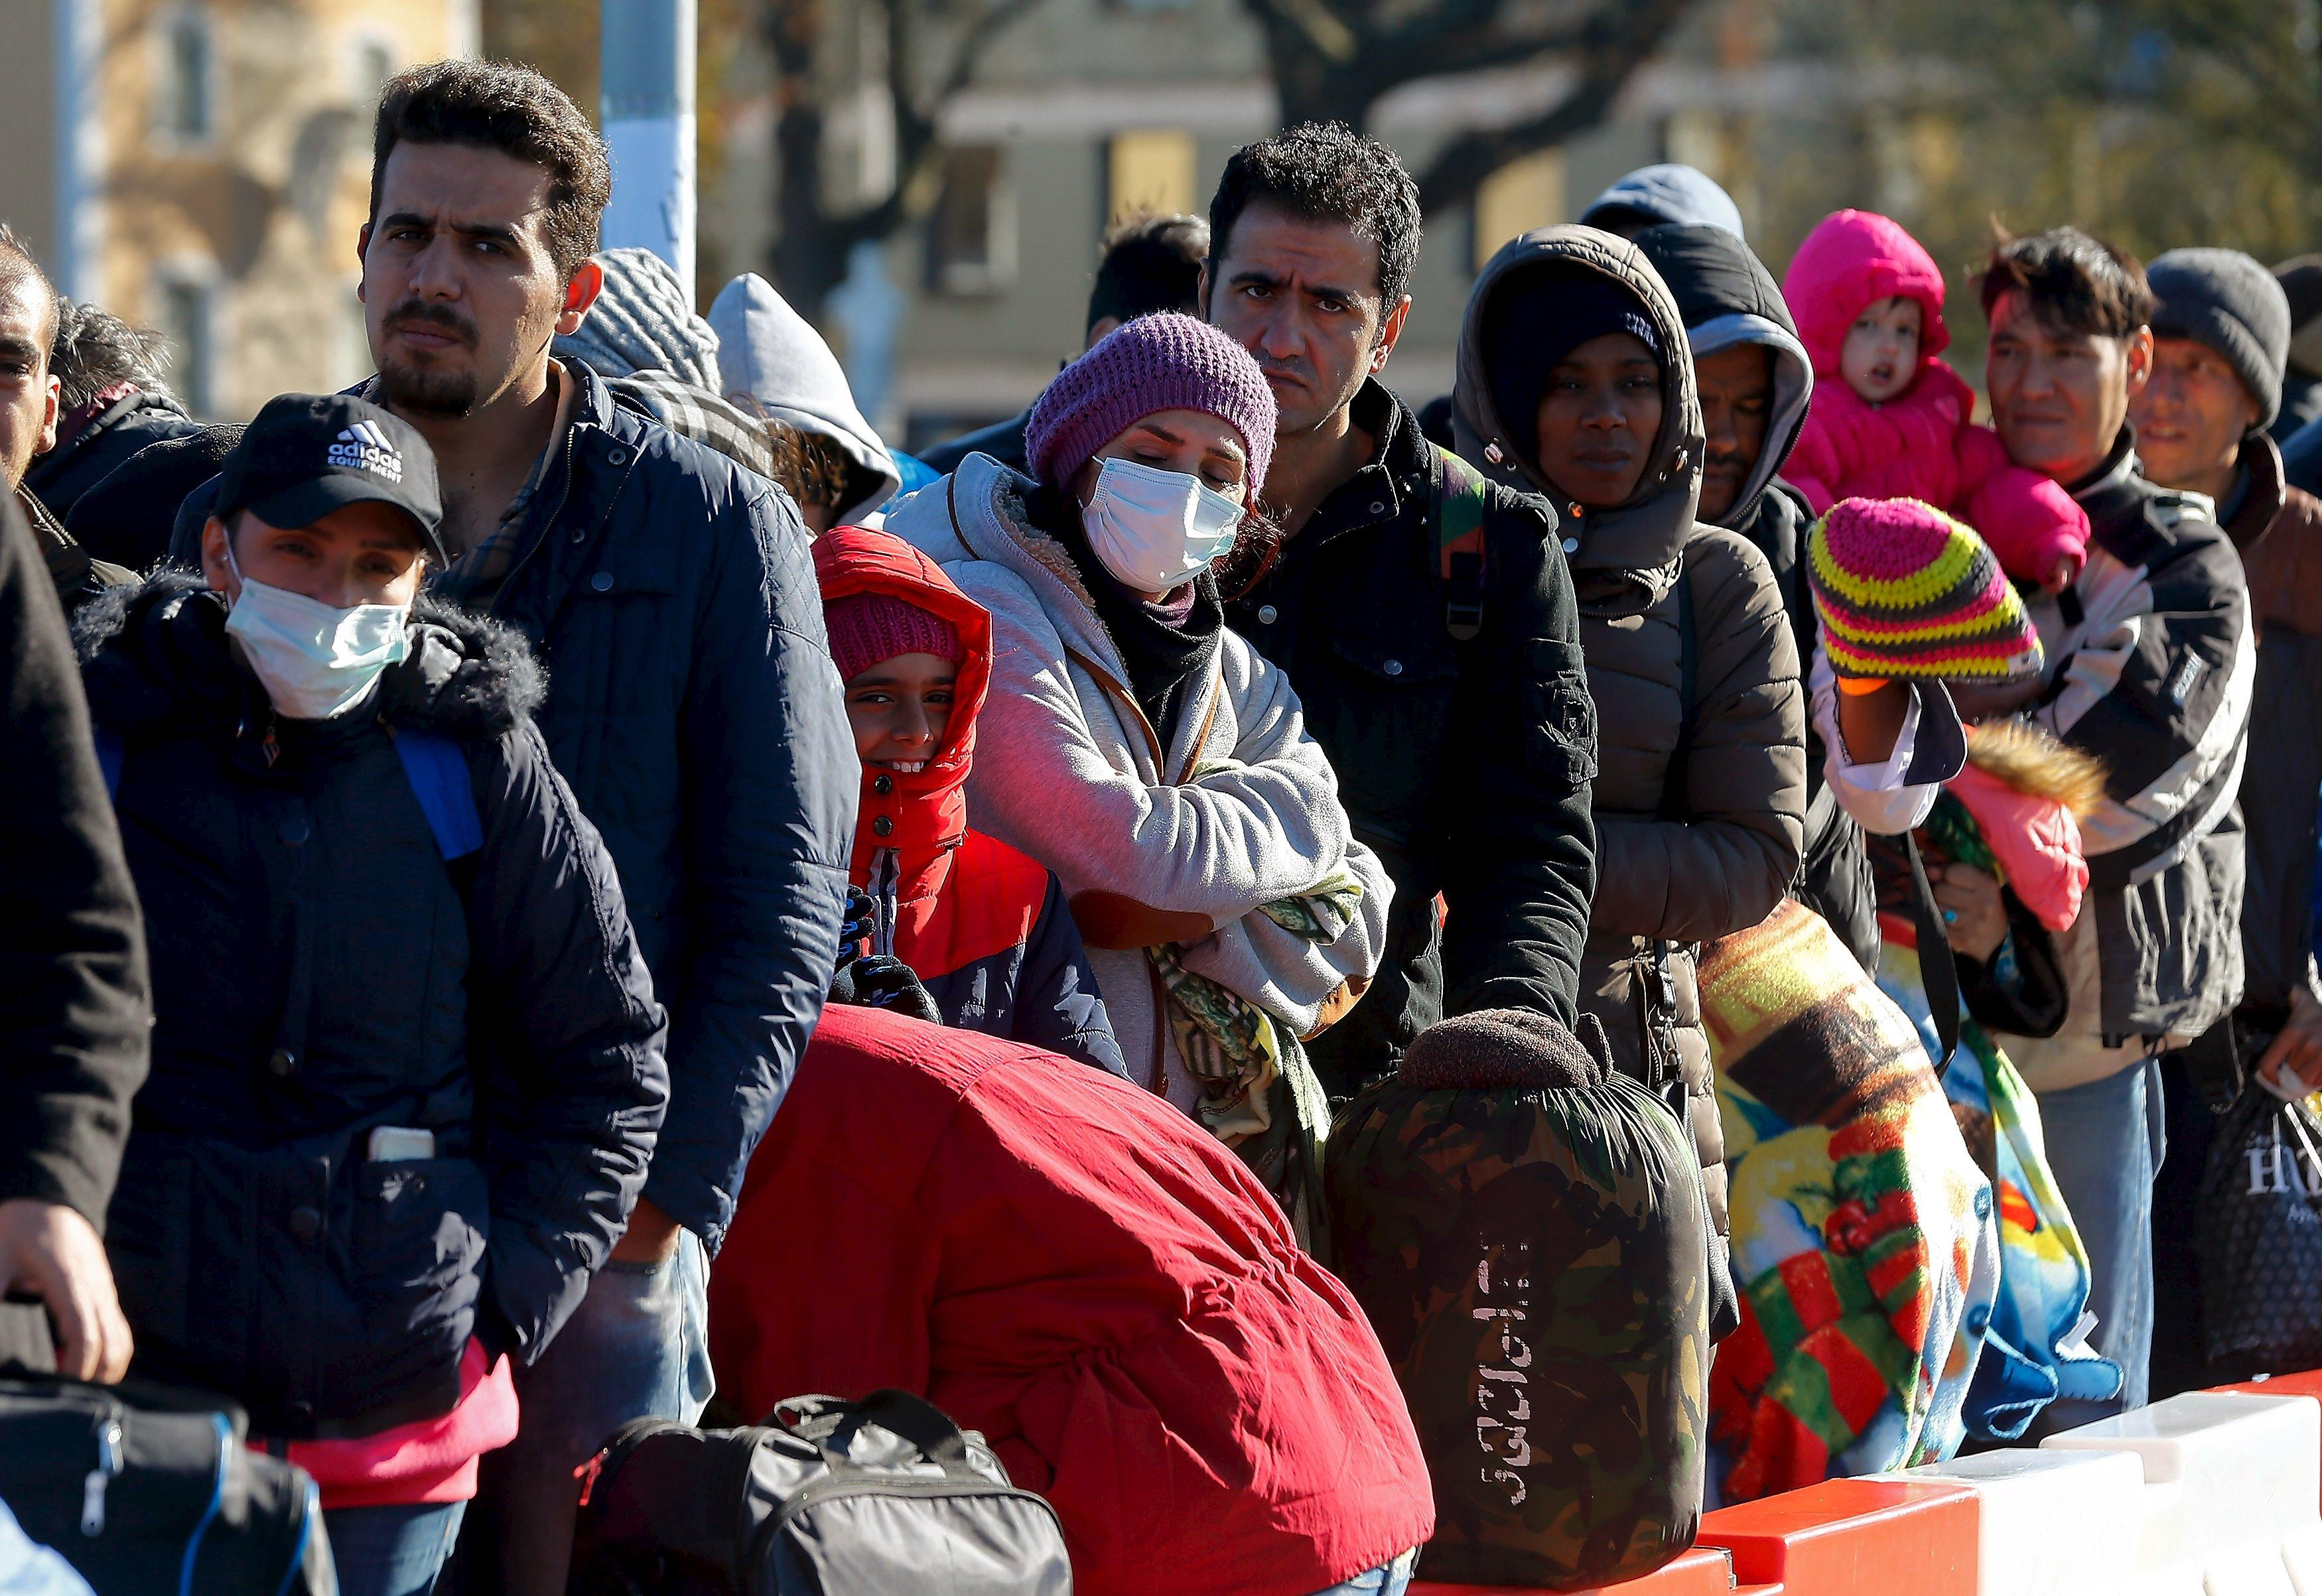 Migrants queue on a bridge crossing the border river Inn at the German-Austrian frontier between Braunau and Simbach am Inn near Passau, Germany November 1, 2015. German Chancellor Angela Merkel failed on Sunday to resolve differences within her ruling coalition on dealing with the crisis over a huge refugee influx, leaving open a row that has dented her conservatives' popularity. REUTERS/Michael Dalder